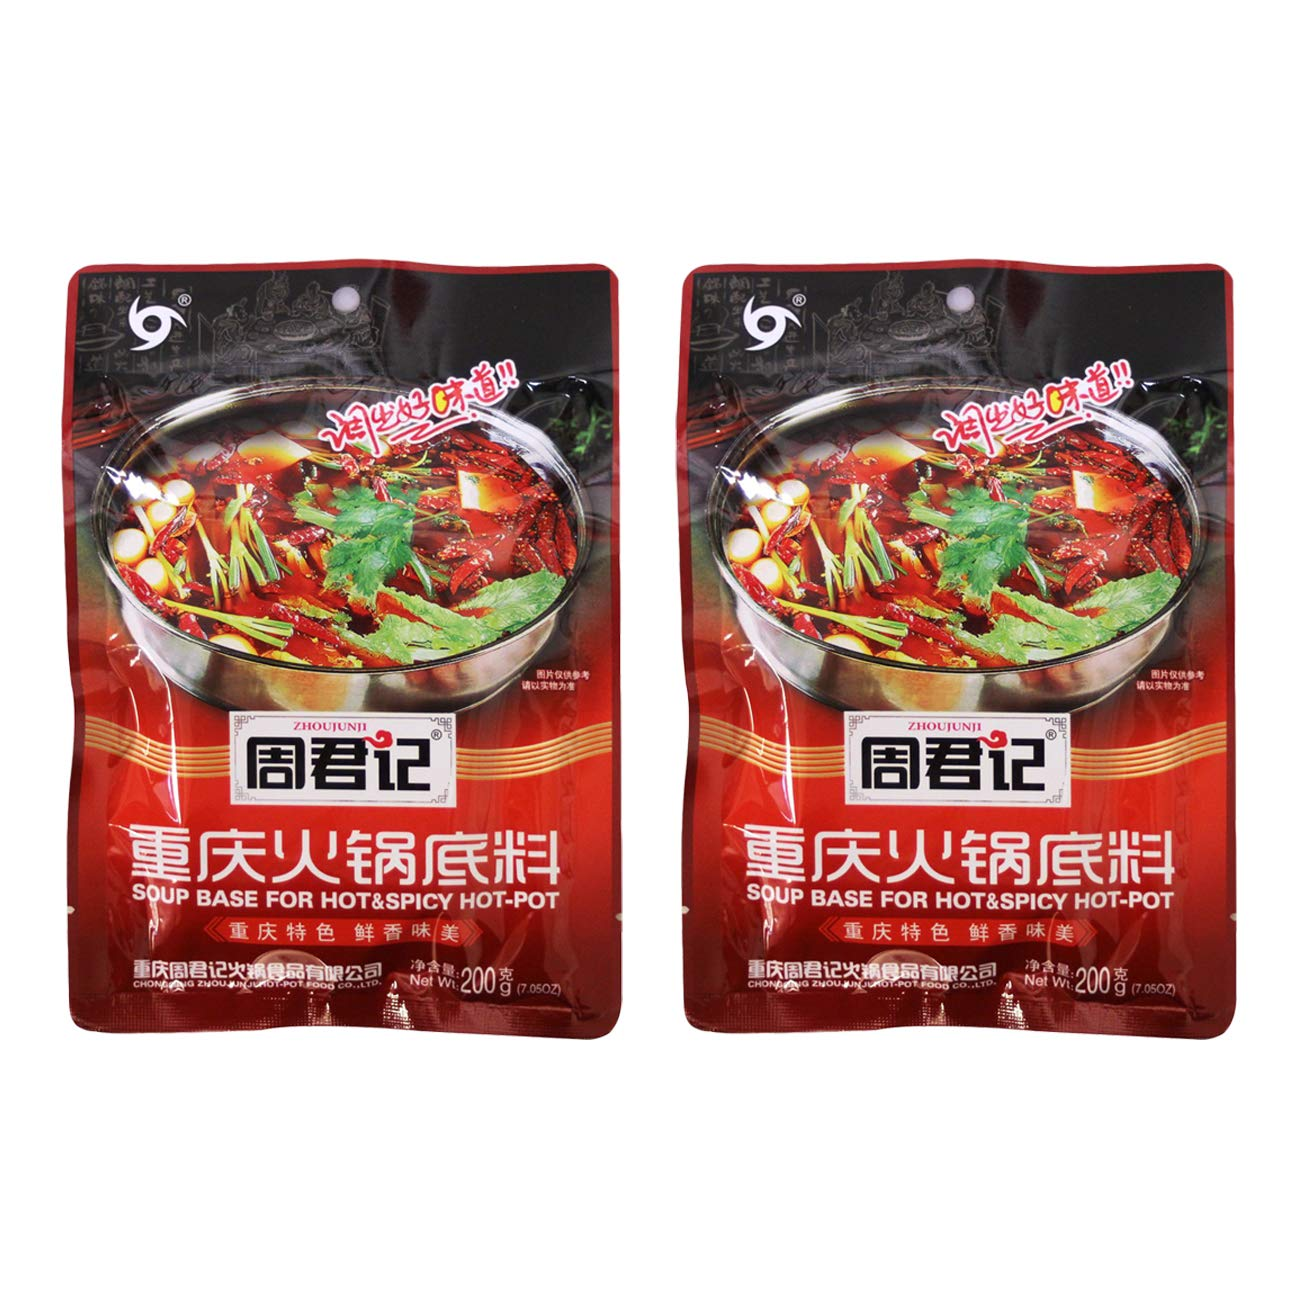 ZHOUJUNJI Hot & Spicy Hot-Pot Soup Base 200g / ????? ??????Chongqing Style Easy Cook Chinese Cuisine Sauce Classic Chinese Food Family Reunion New Year (2 packs)